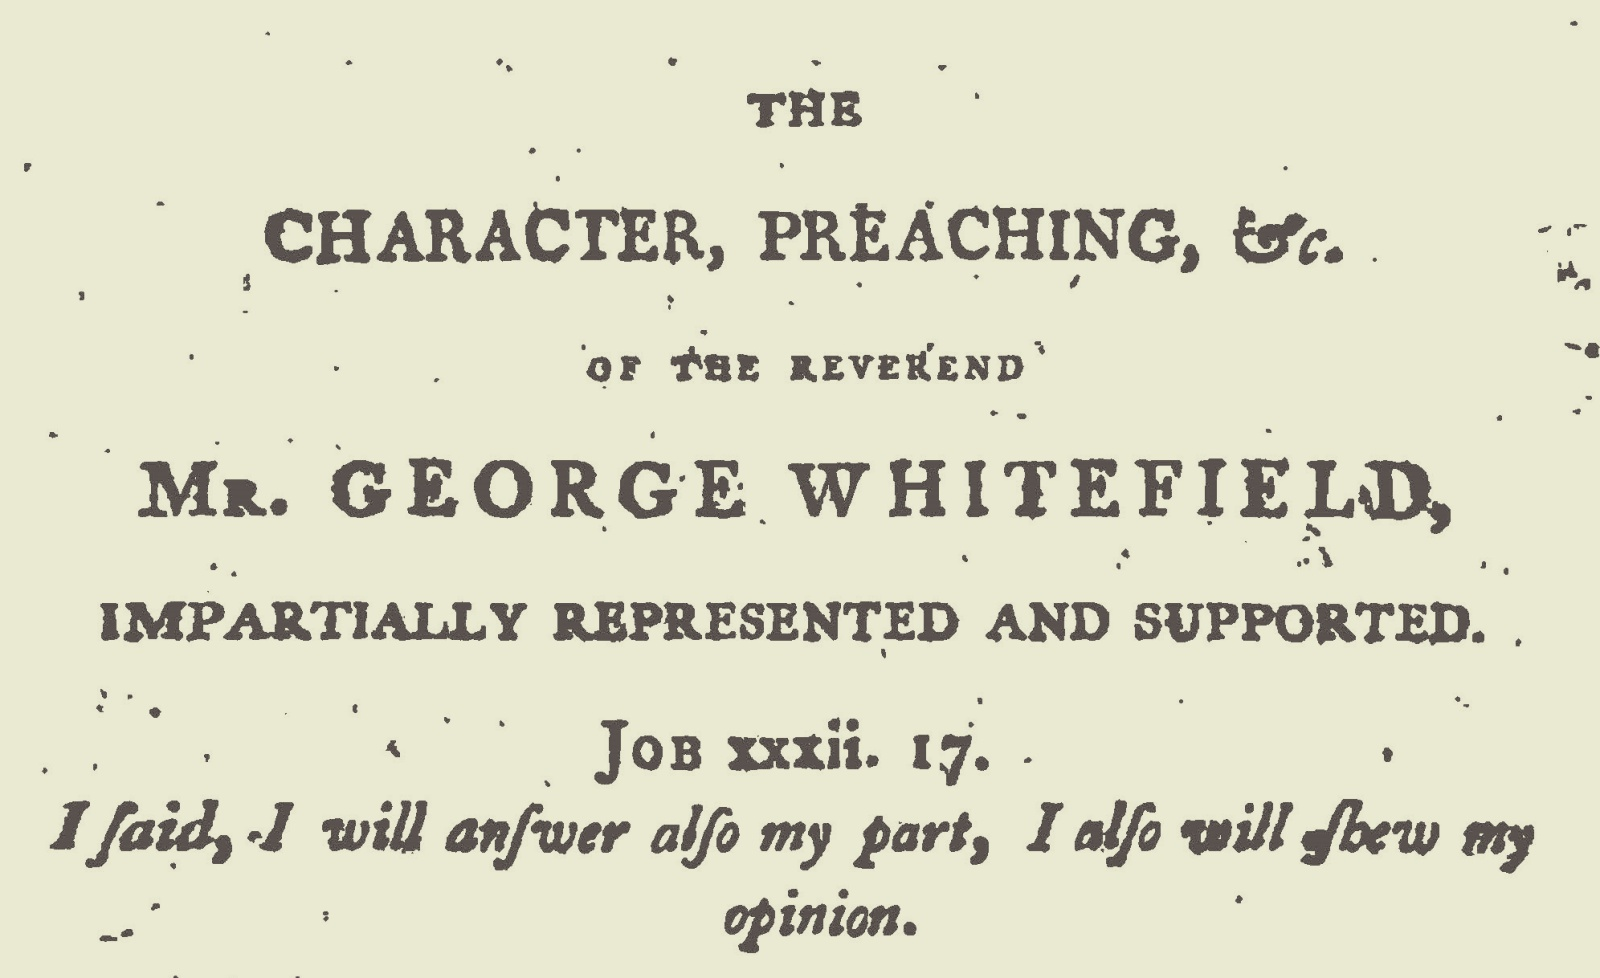 Although in this edition authorship is attributed to a Joseph Smith, the author was Josiah Smith, Sr.